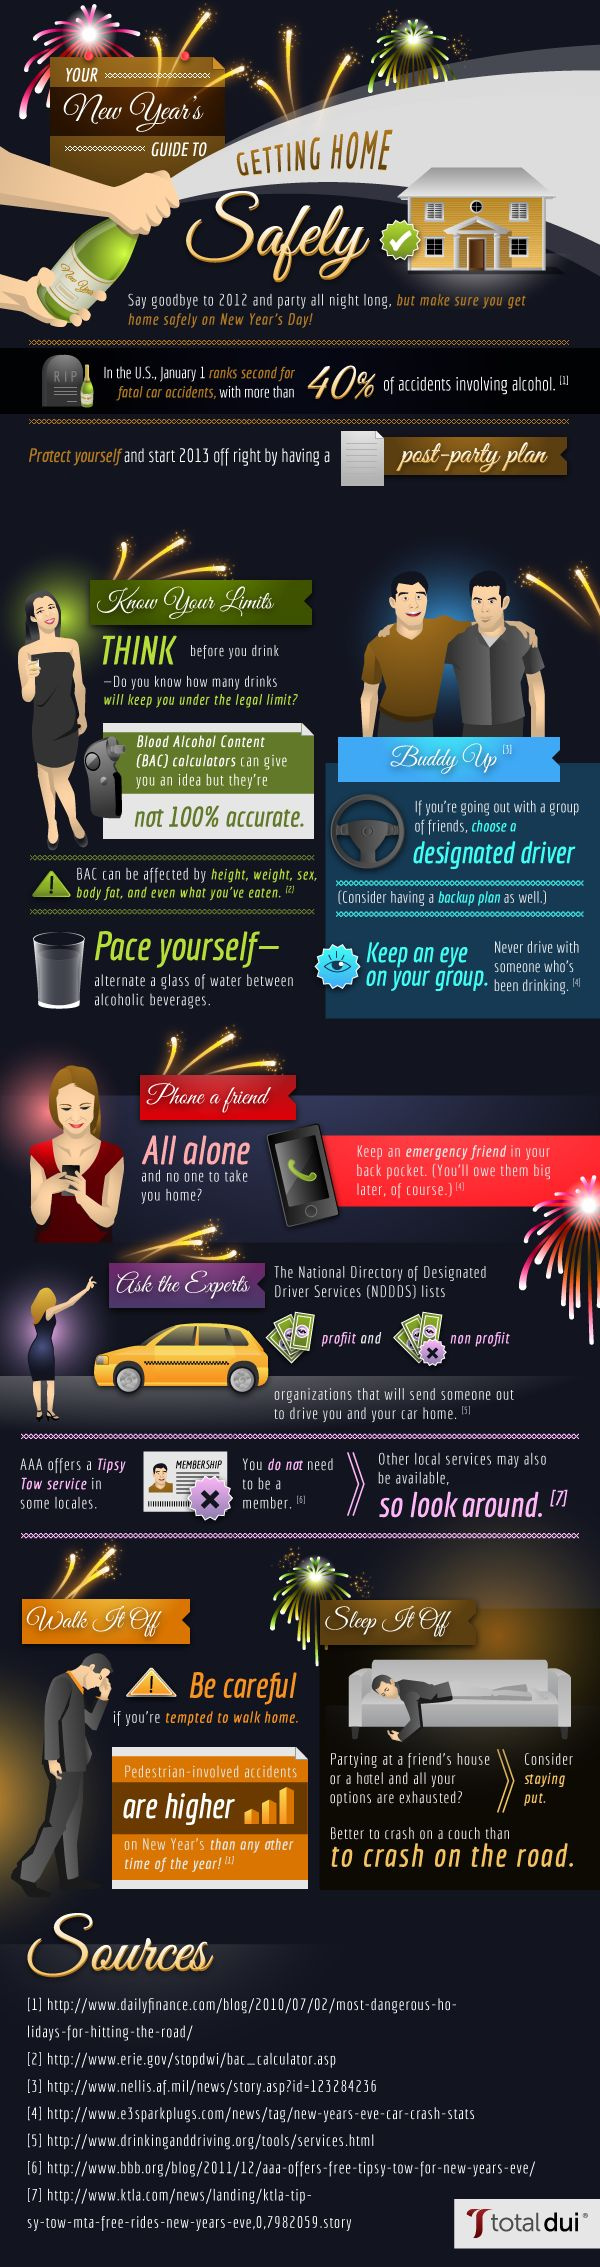 January 1 ranks second for fatal car accidents with more than 40 percent of accidents involving alcohol protect yourself and start 2013 off right by